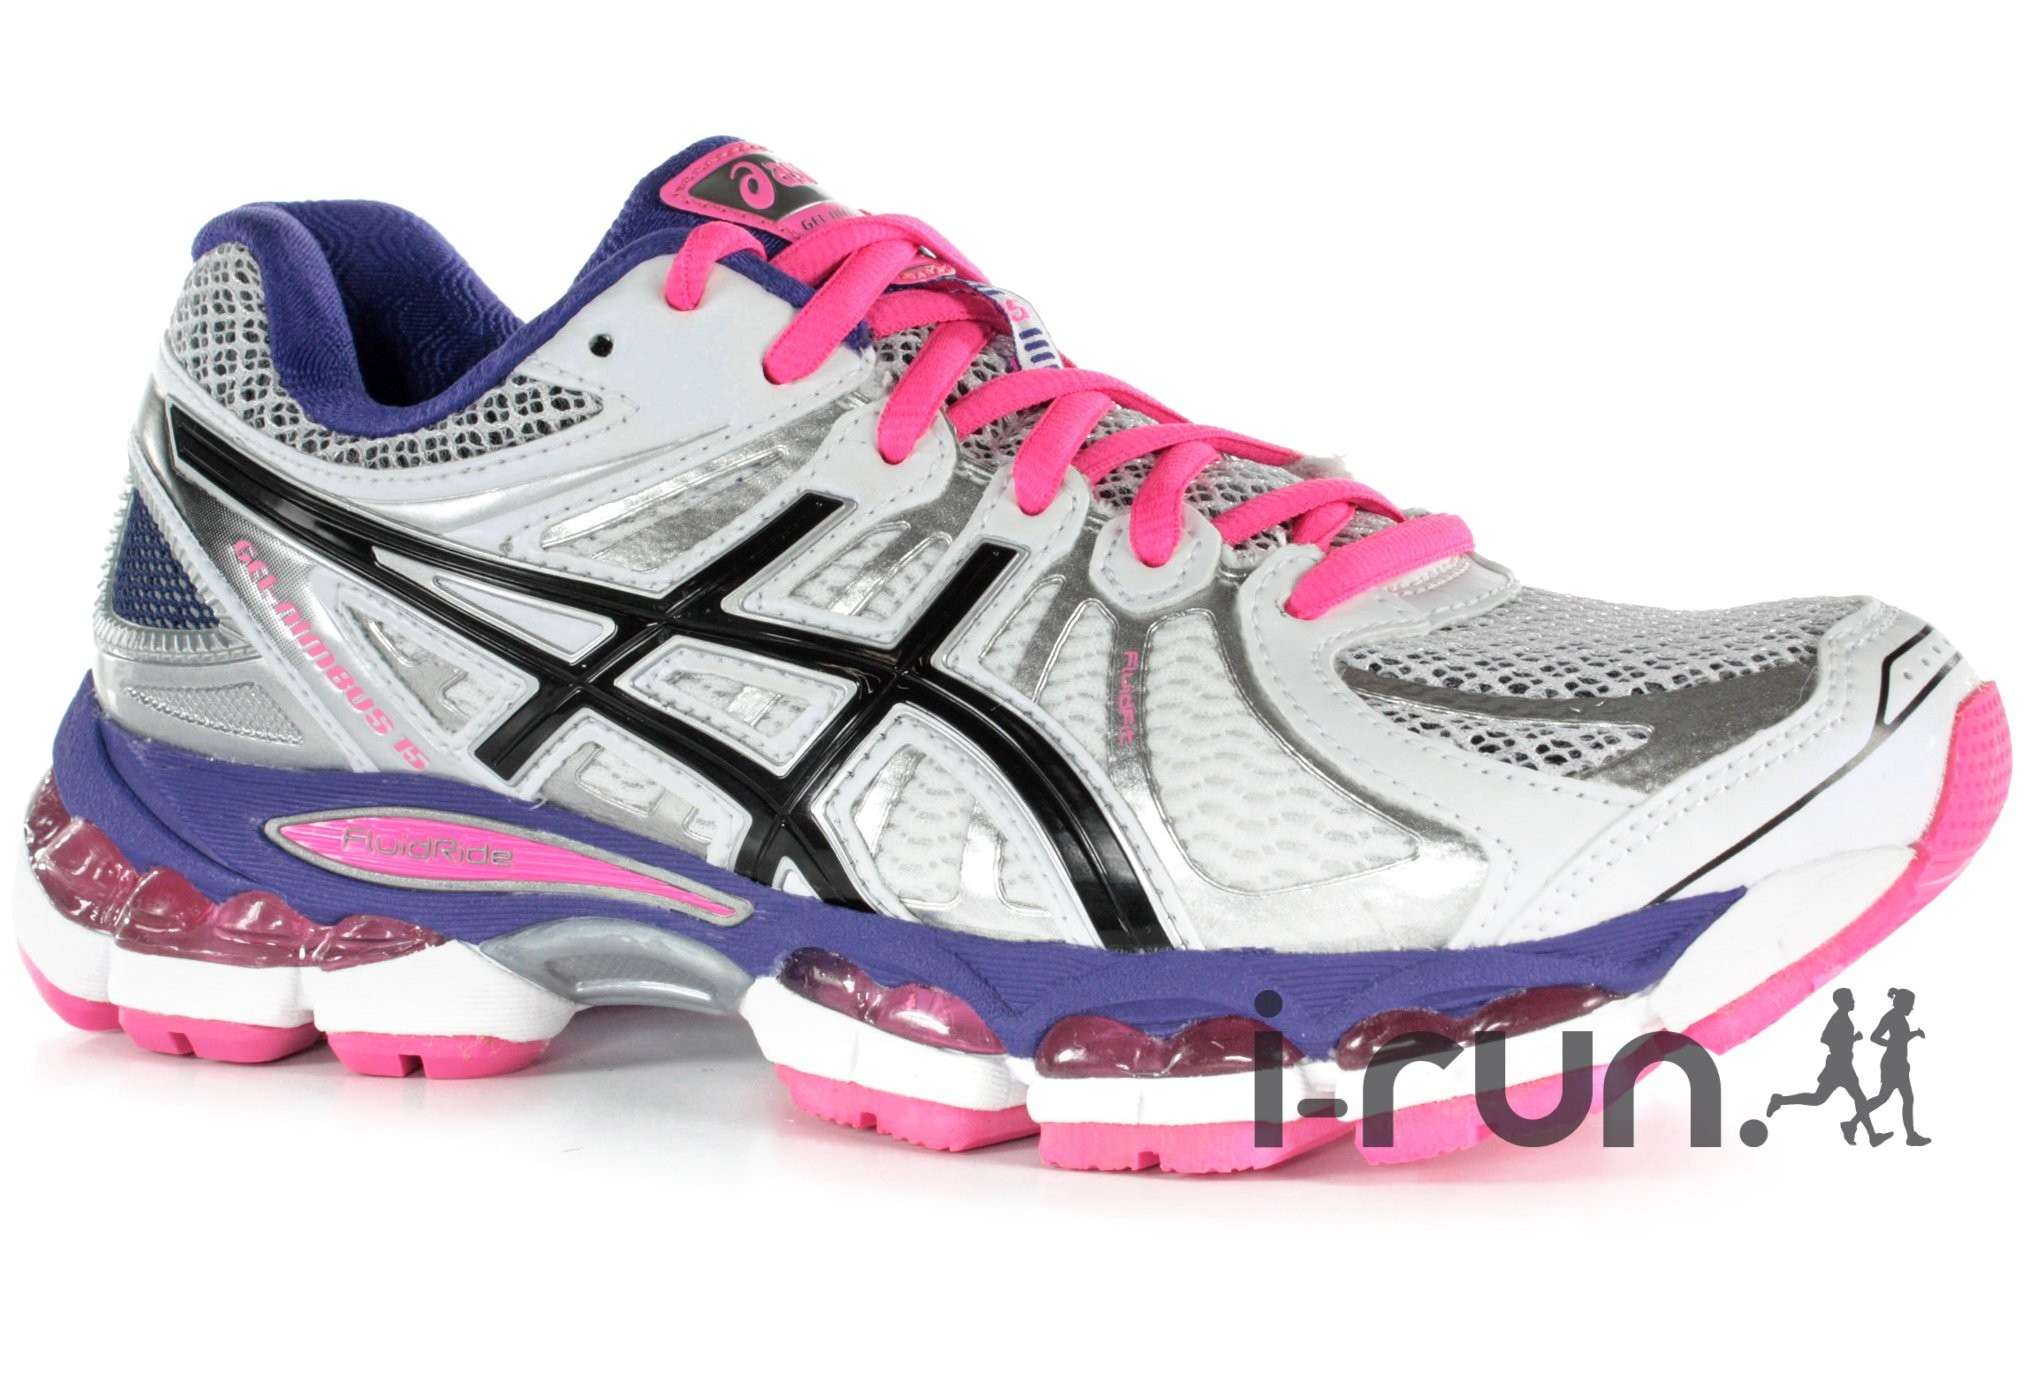 asics gel nimbus 15 femme pas cher. Black Bedroom Furniture Sets. Home Design Ideas